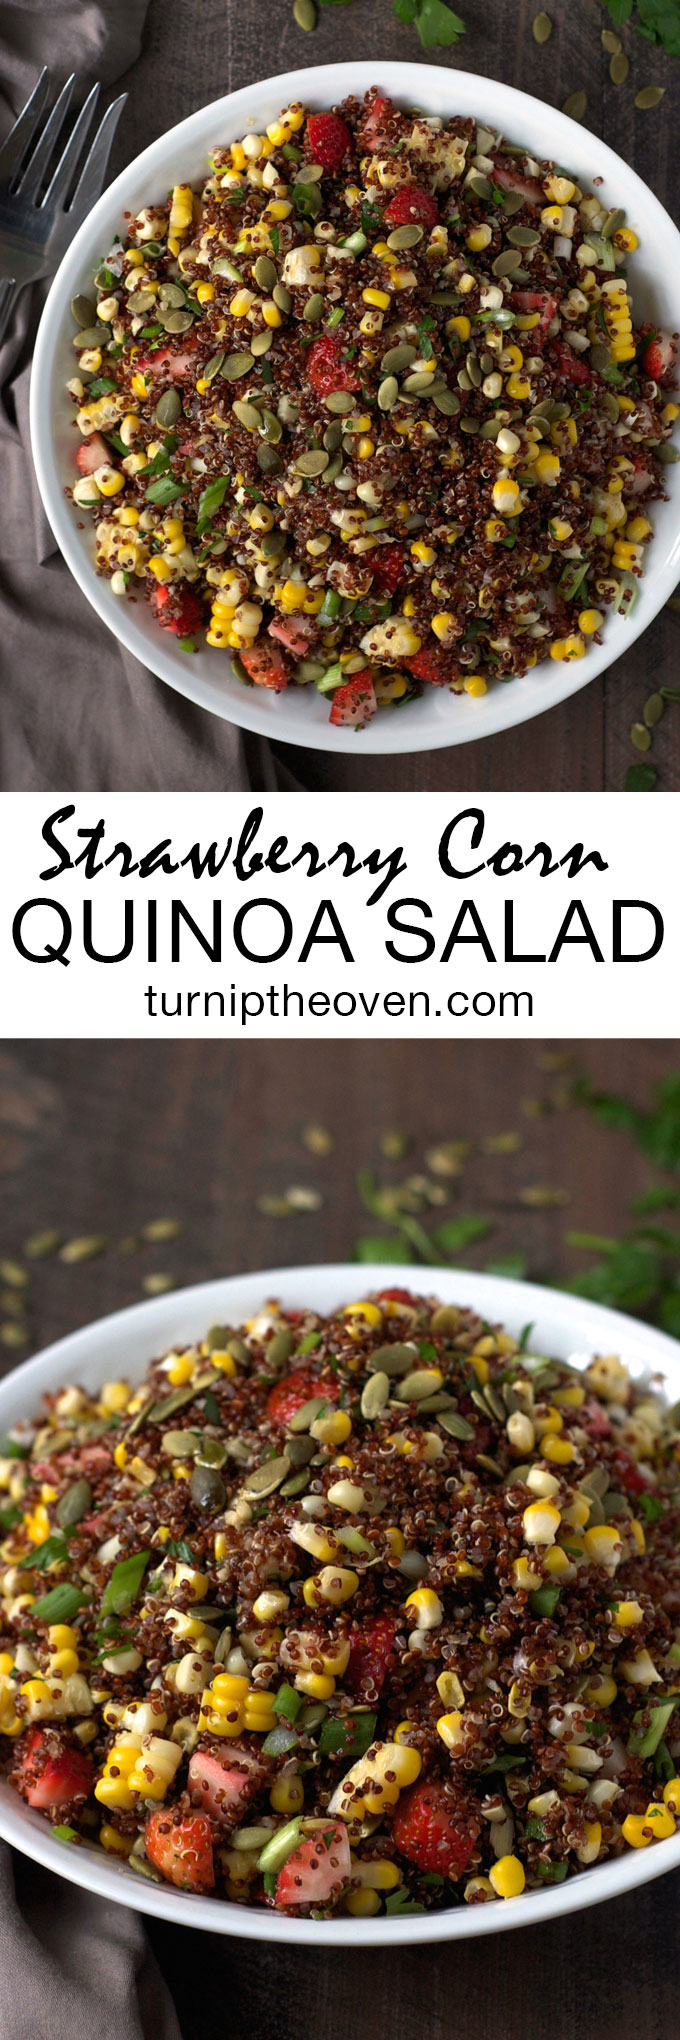 This strawberry corn quinoa salad is dressed with a subtly smoky chipotle chia seed dressing. Gluten-free, vegan, and packed with protein, it's a great make-ahead potluck dish or take-to-work lunch.